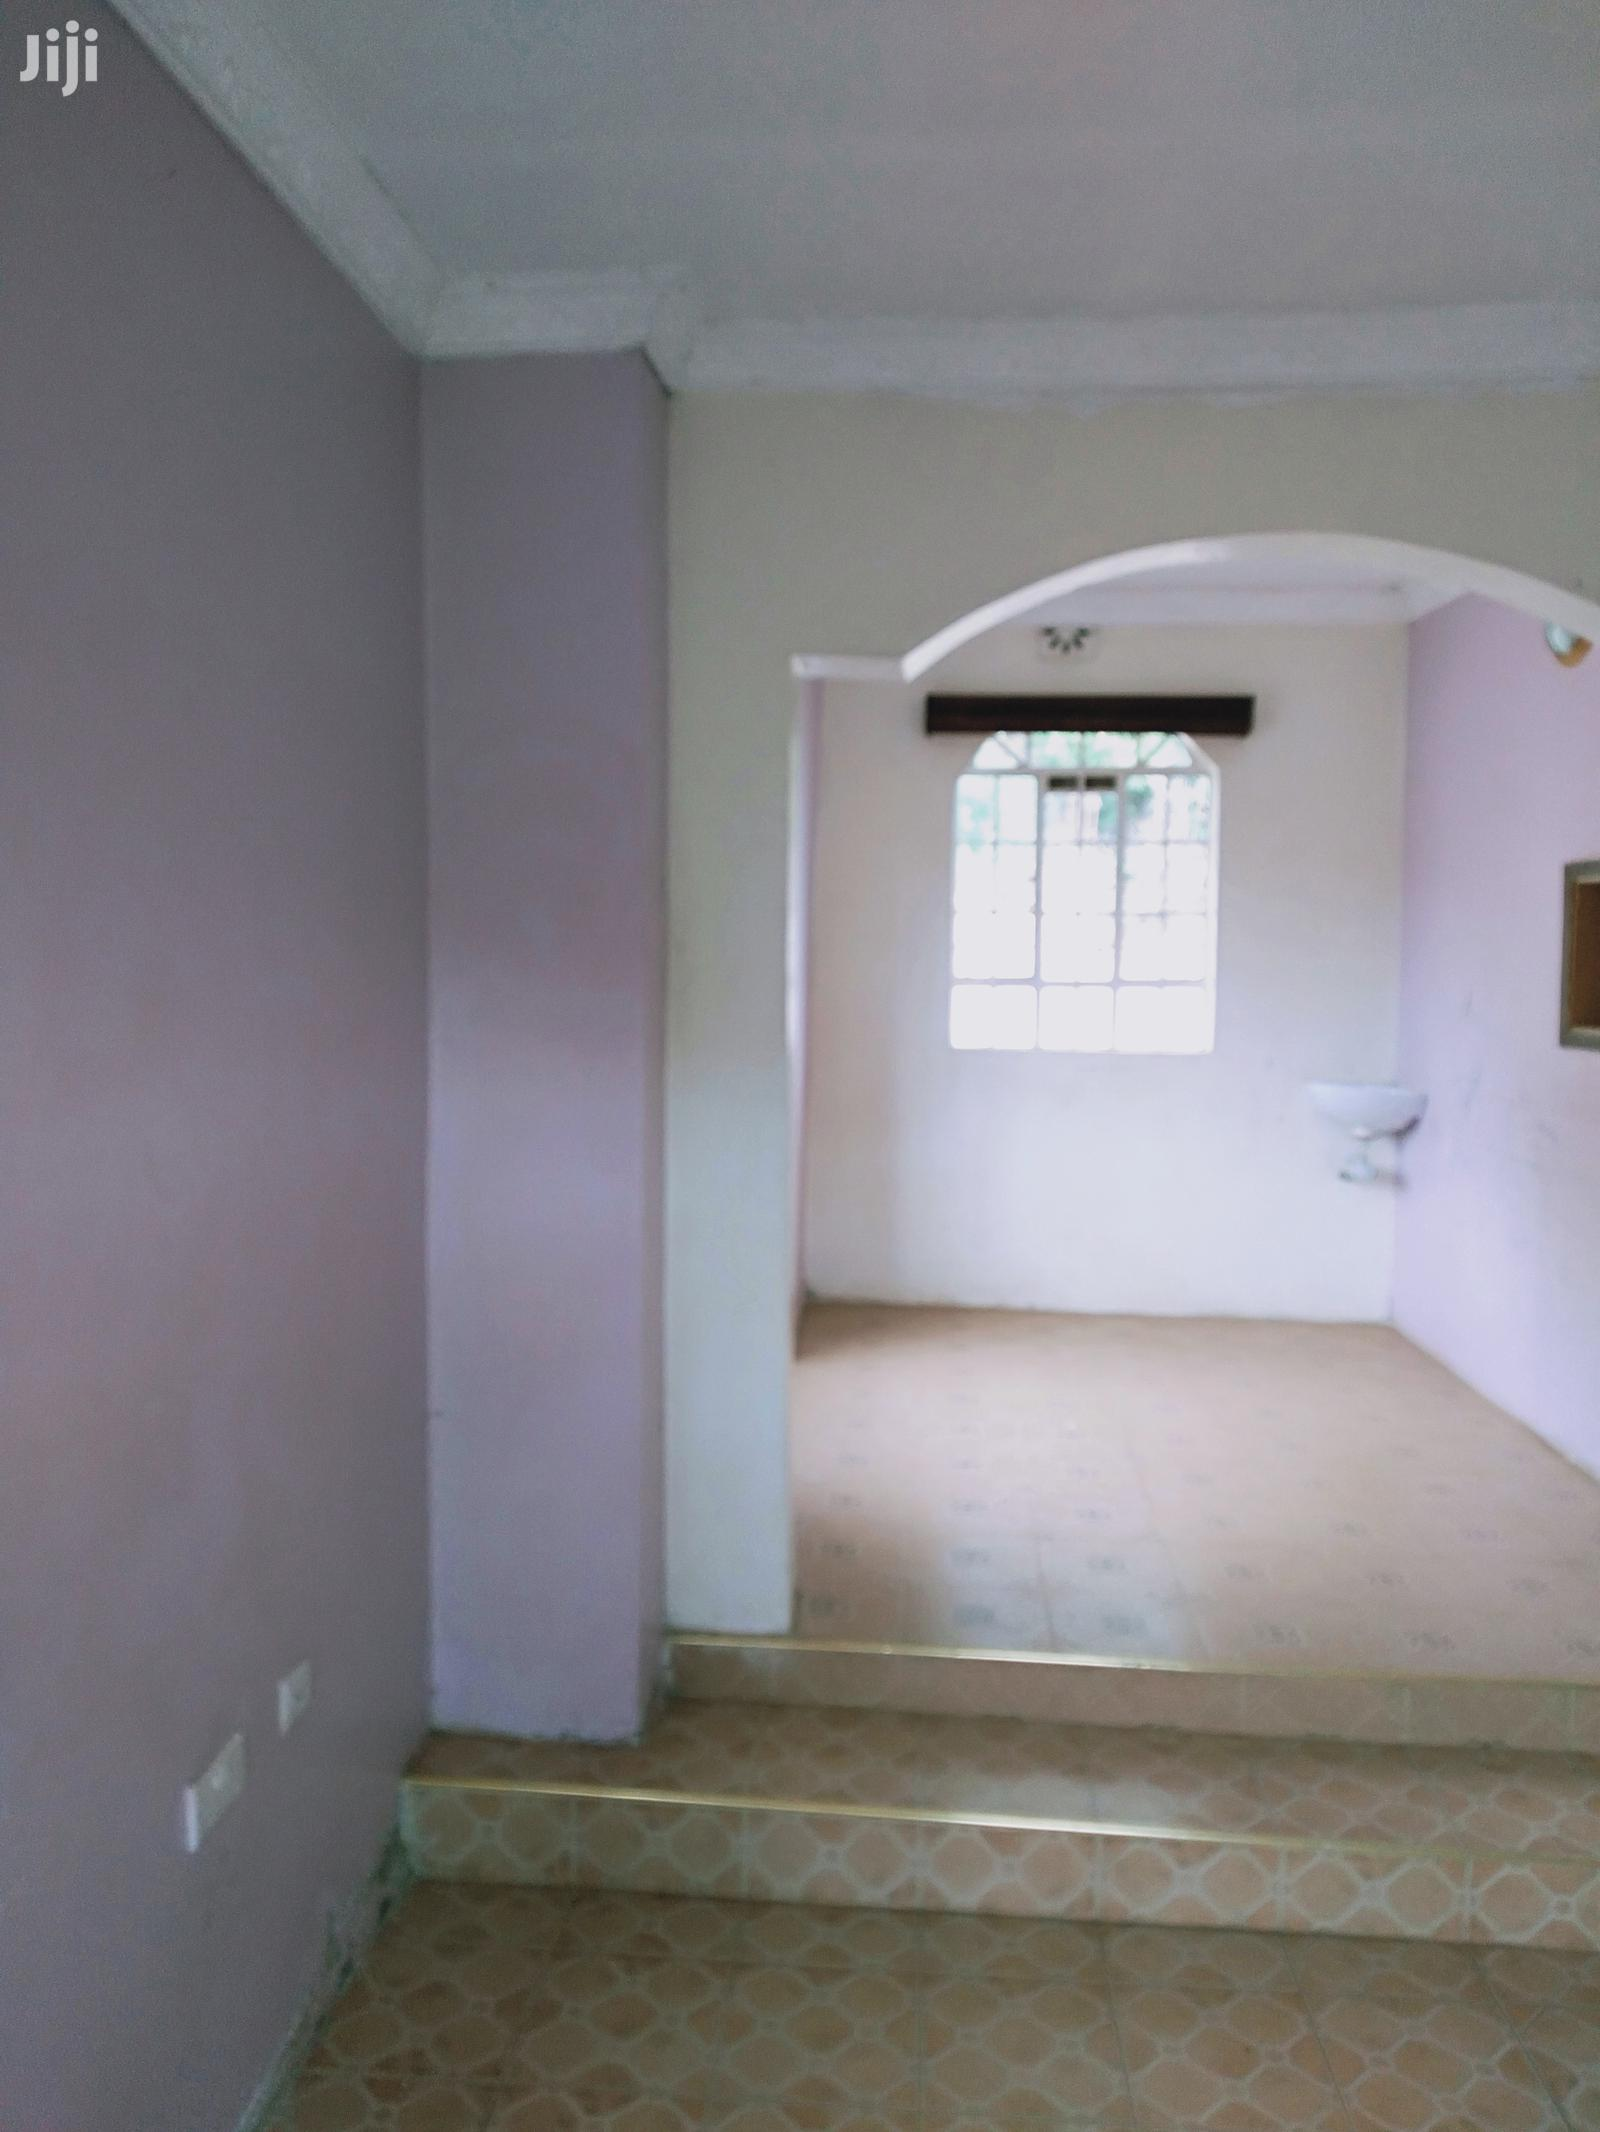 3 Bedroom Bungalow for Rental,At Membly Estate Ruiru | Houses & Apartments For Rent for sale in Membley Estate, Kiambu, Kenya